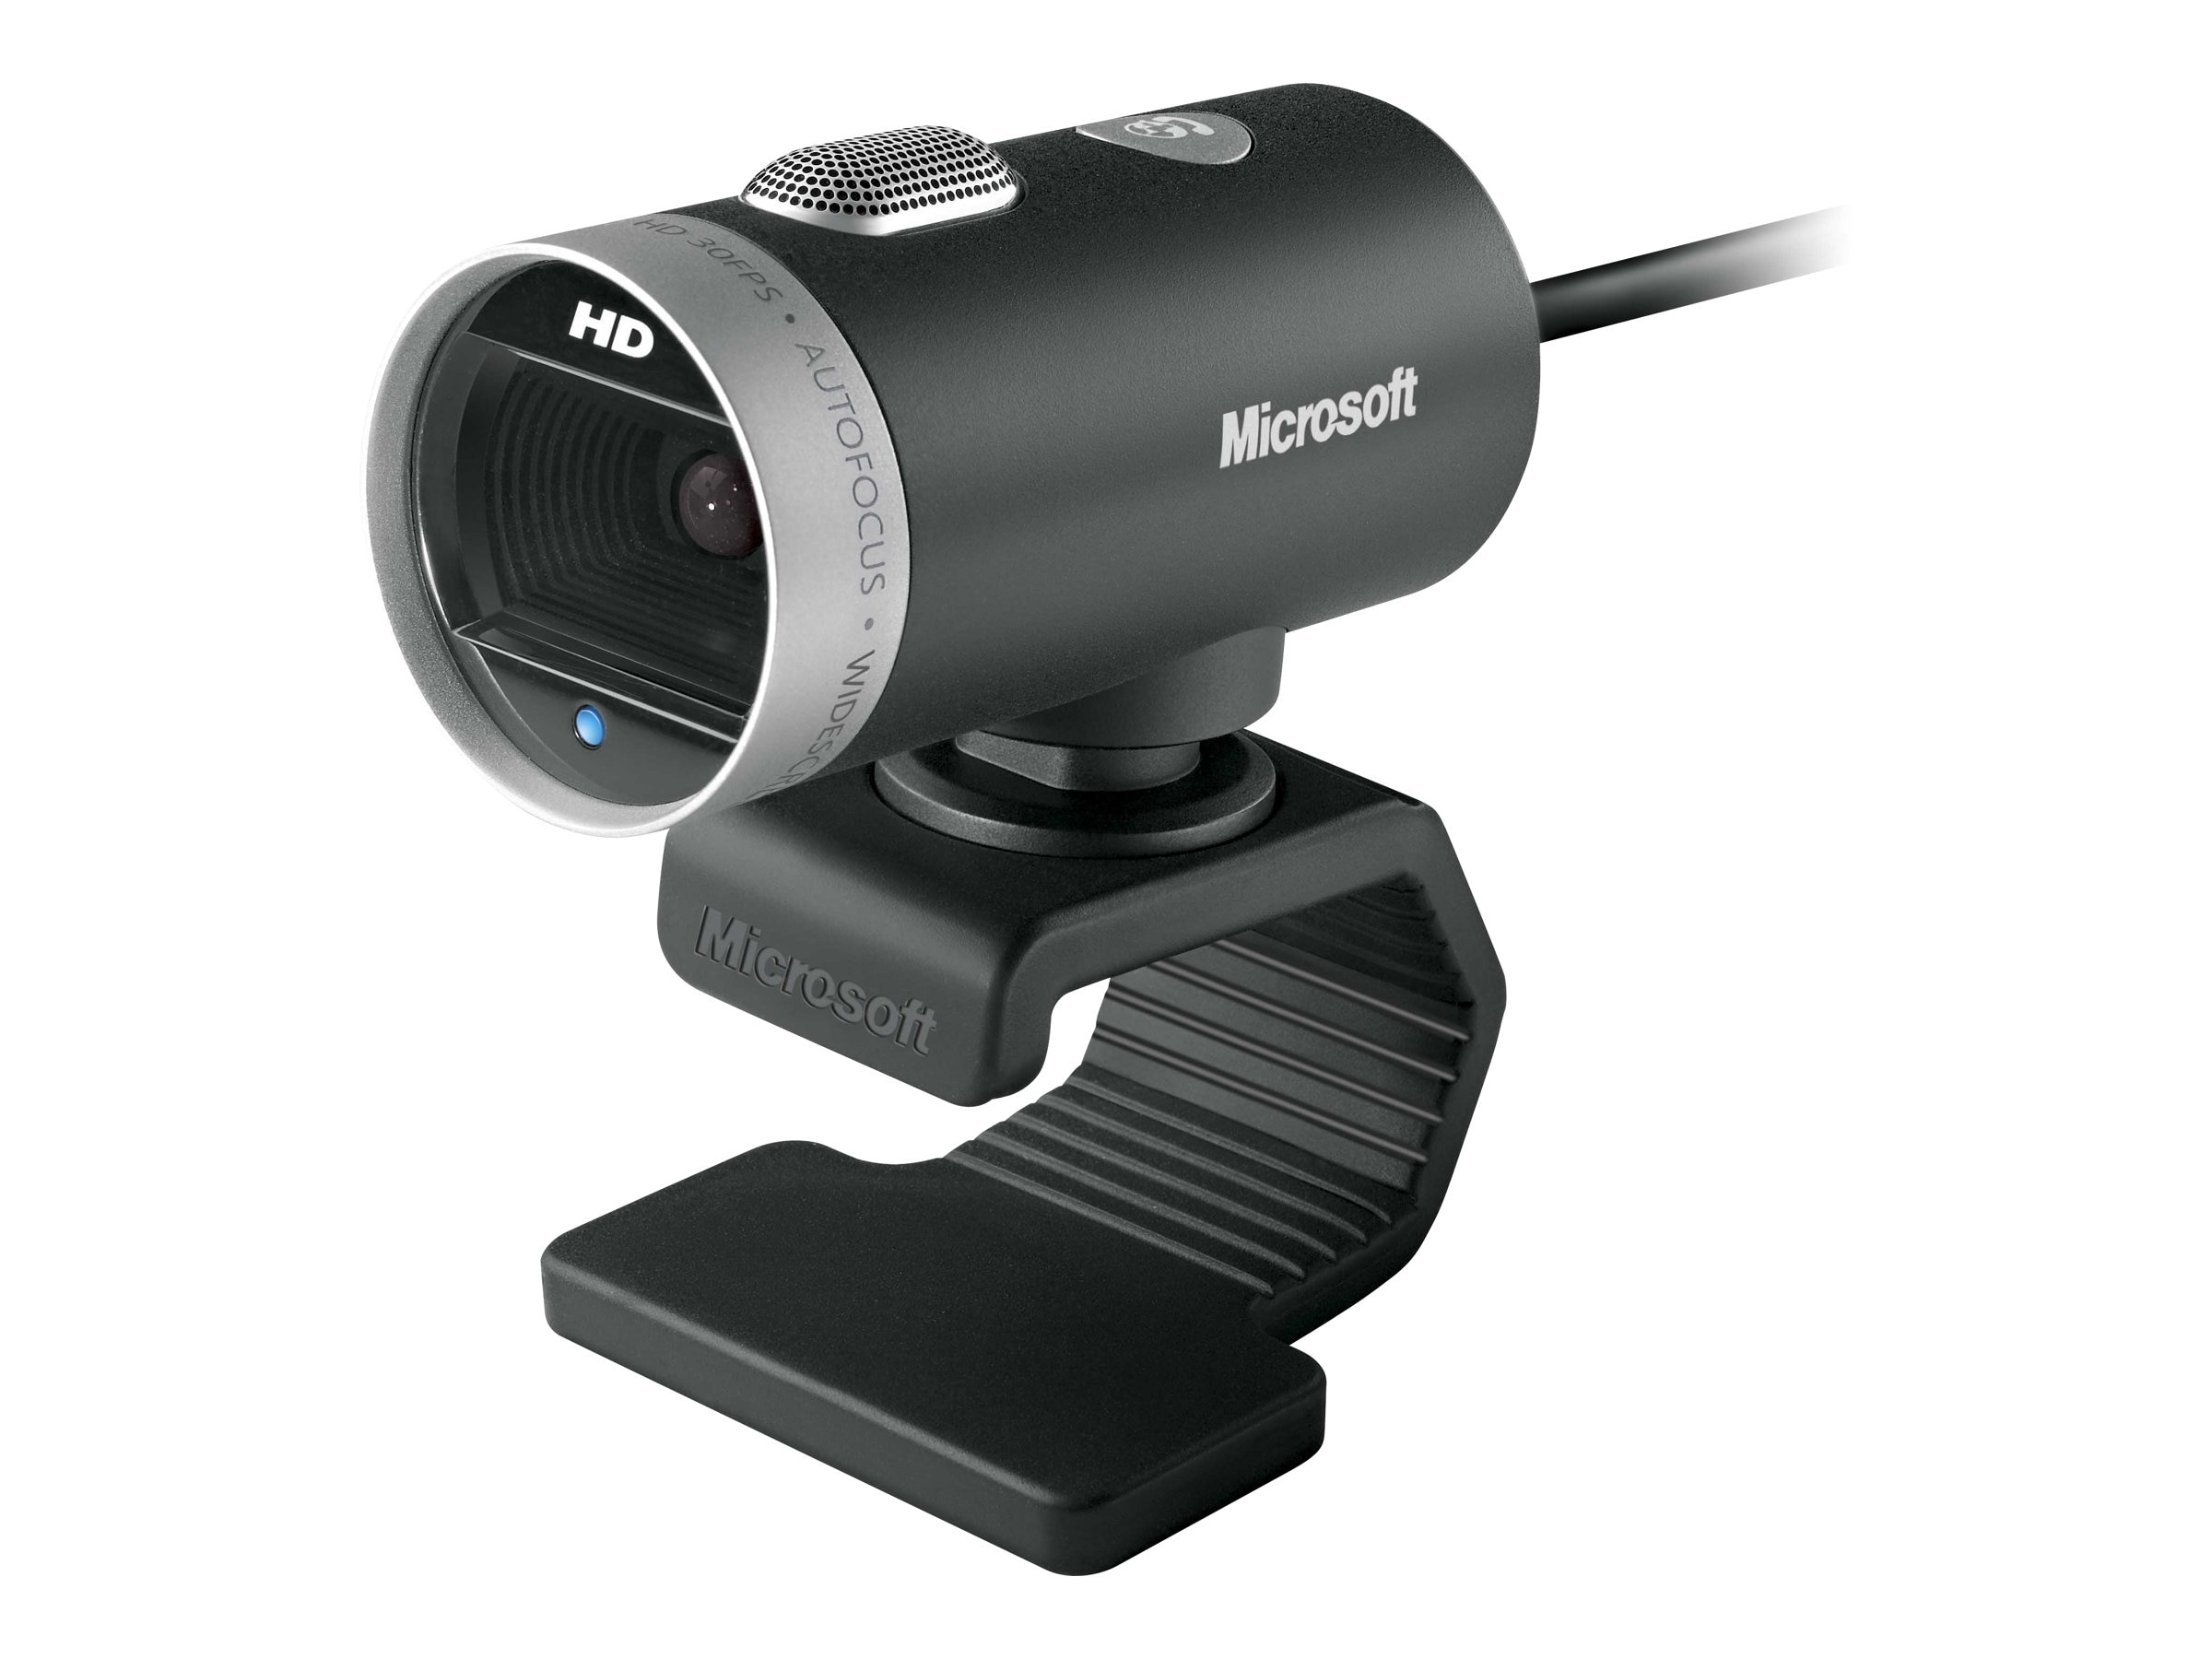 Microsoft Lifecam Cinema, USB, Windows, H5D-00013, 14971043, WebCams & Accessories